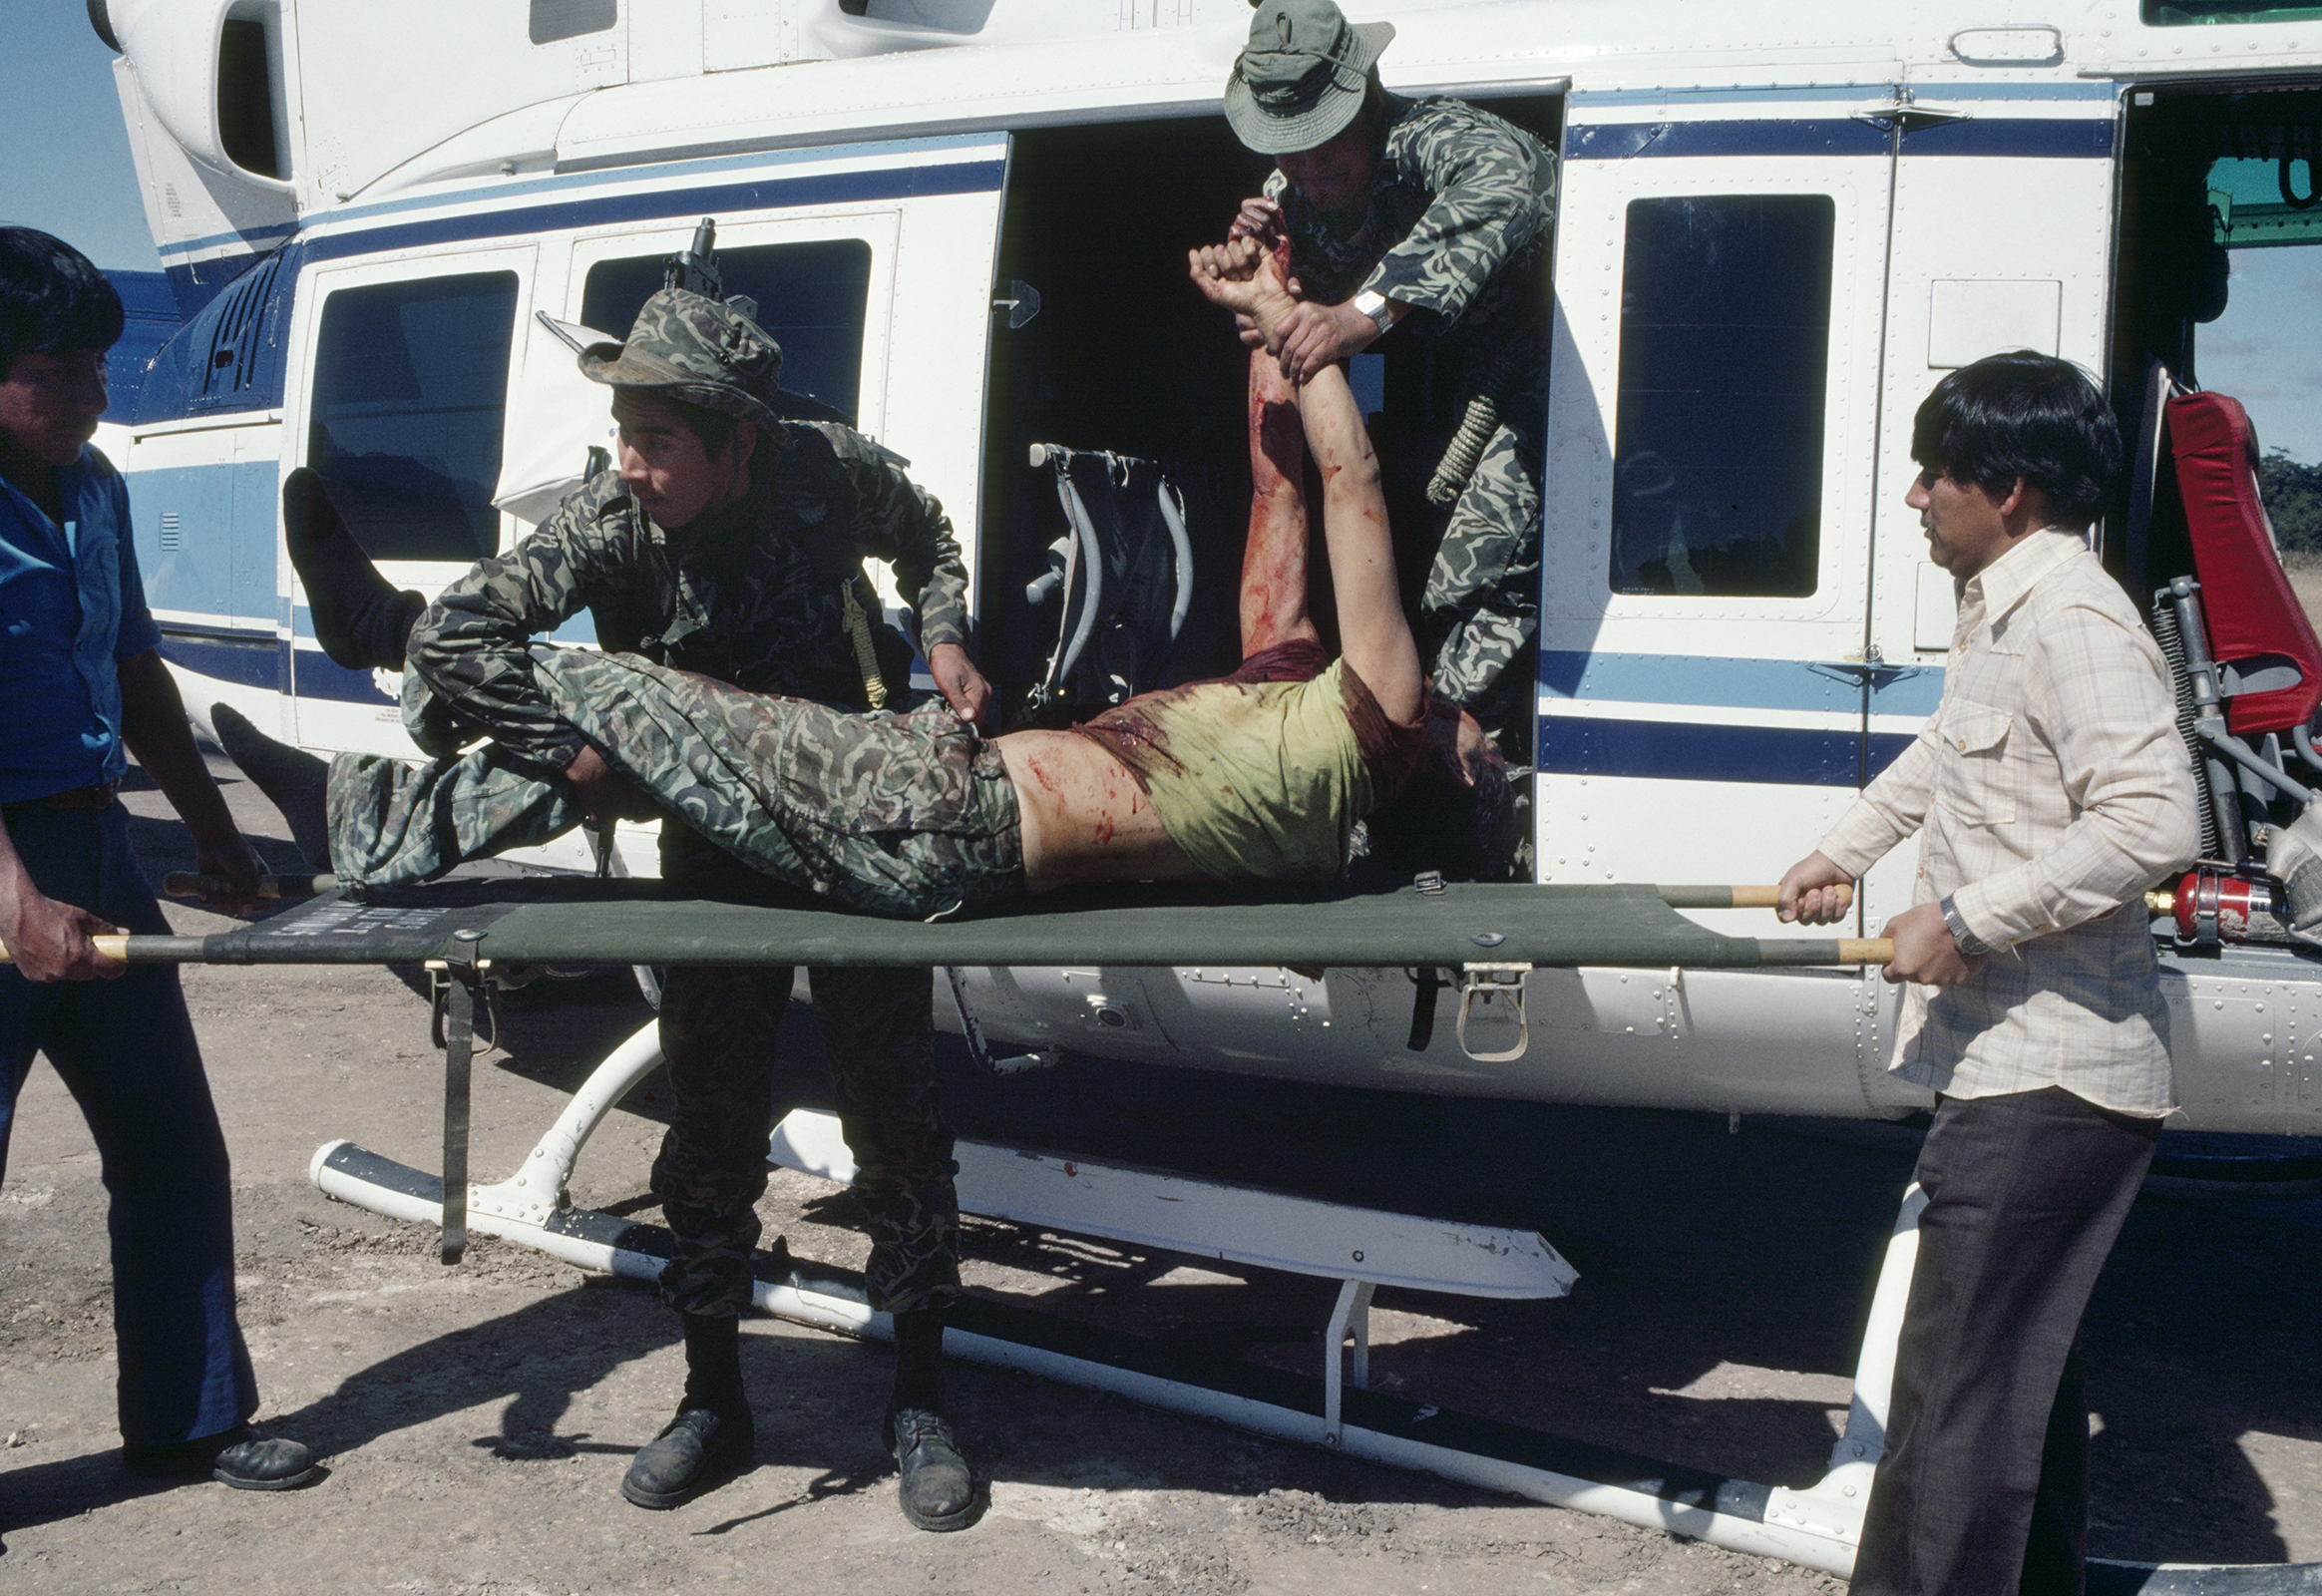 Guatemalan army soldiers transfer a dead soldier from a helicopter to a stretcher in Santa Cruz del Quiché, Guatemala, January 20, 1982. On January 19, 1982, the Guerrilla Army of the Poor, EGP, attacked the army garrison in San Juan Cotzal, 60 miles north, with a reported 300 insurgents killing 37 government soldiers.